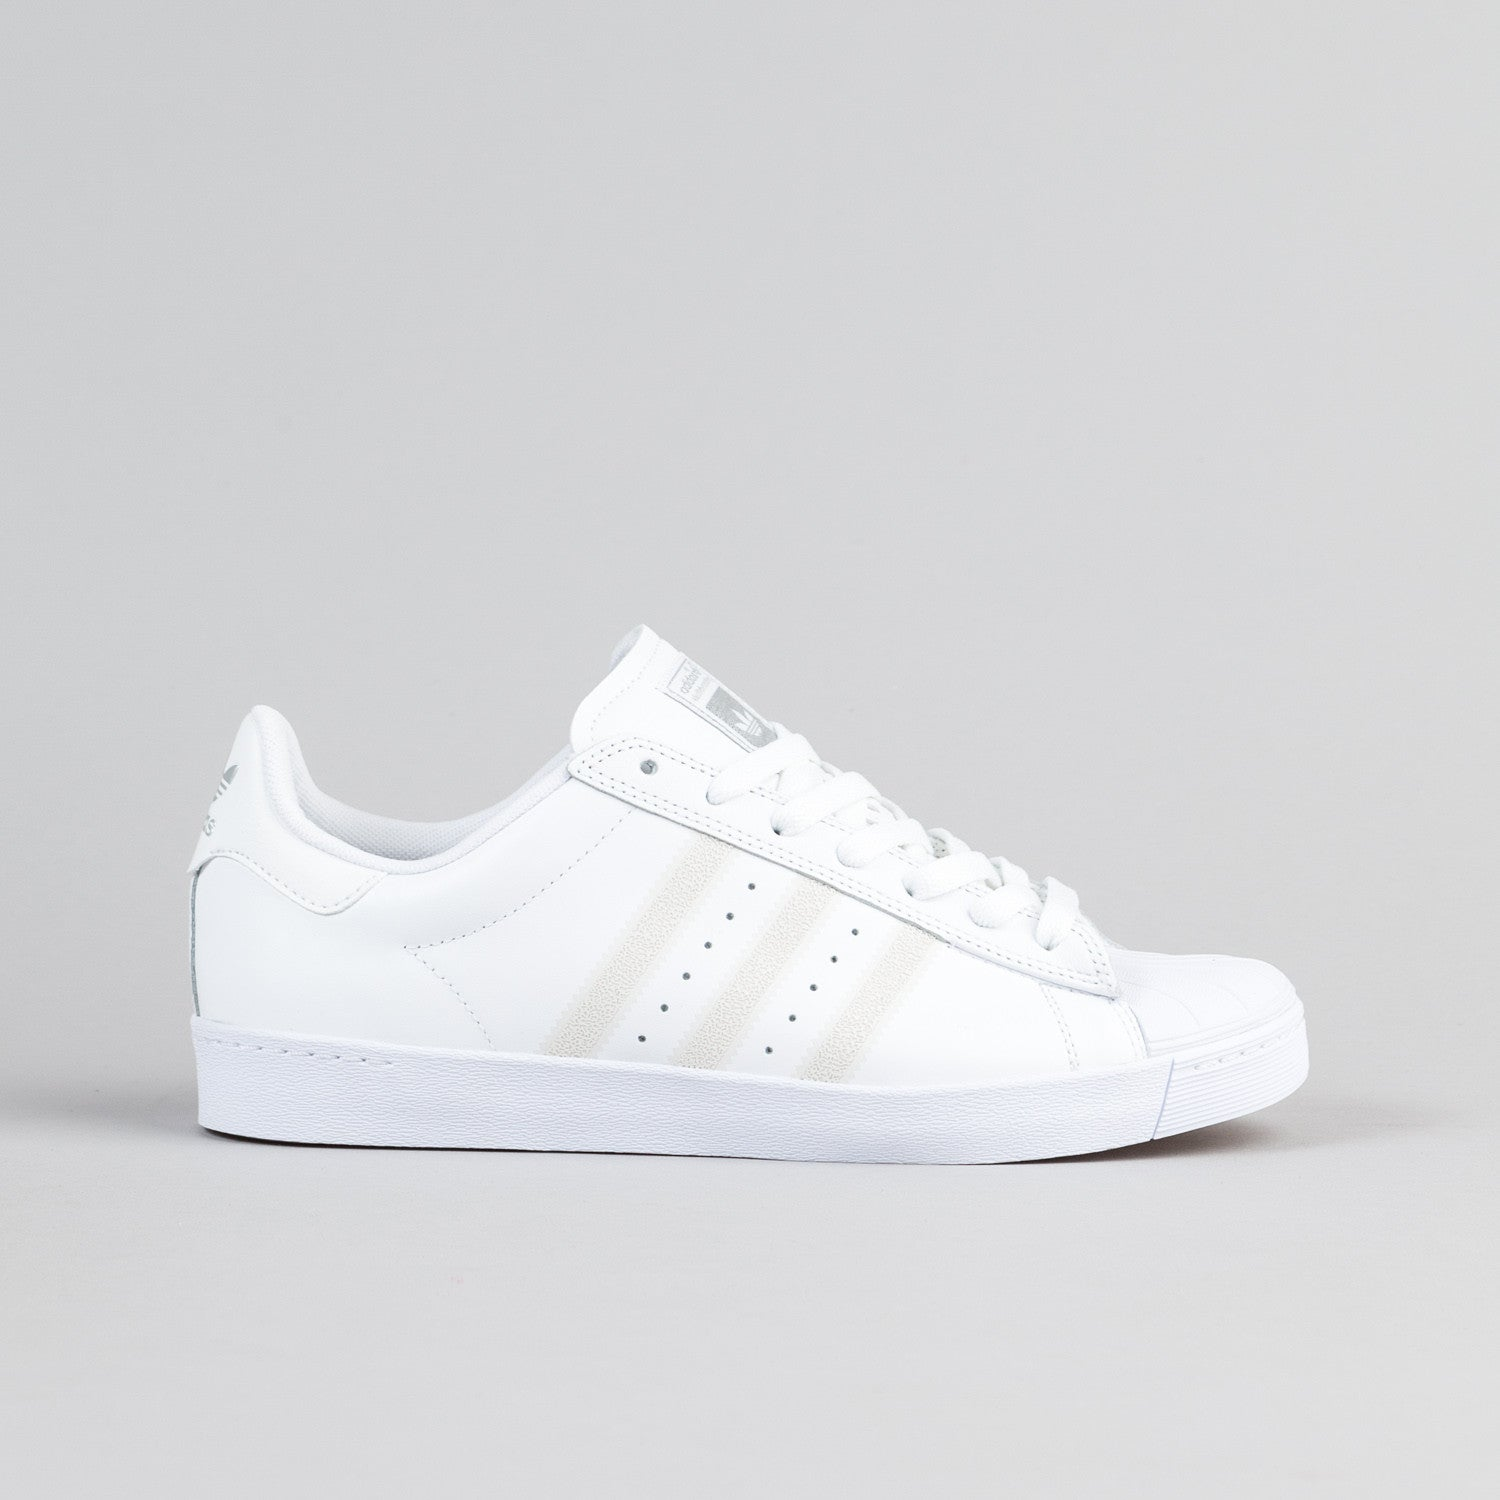 Promotions Cheap Adidas Superstar Vulc Black Official, Adidas